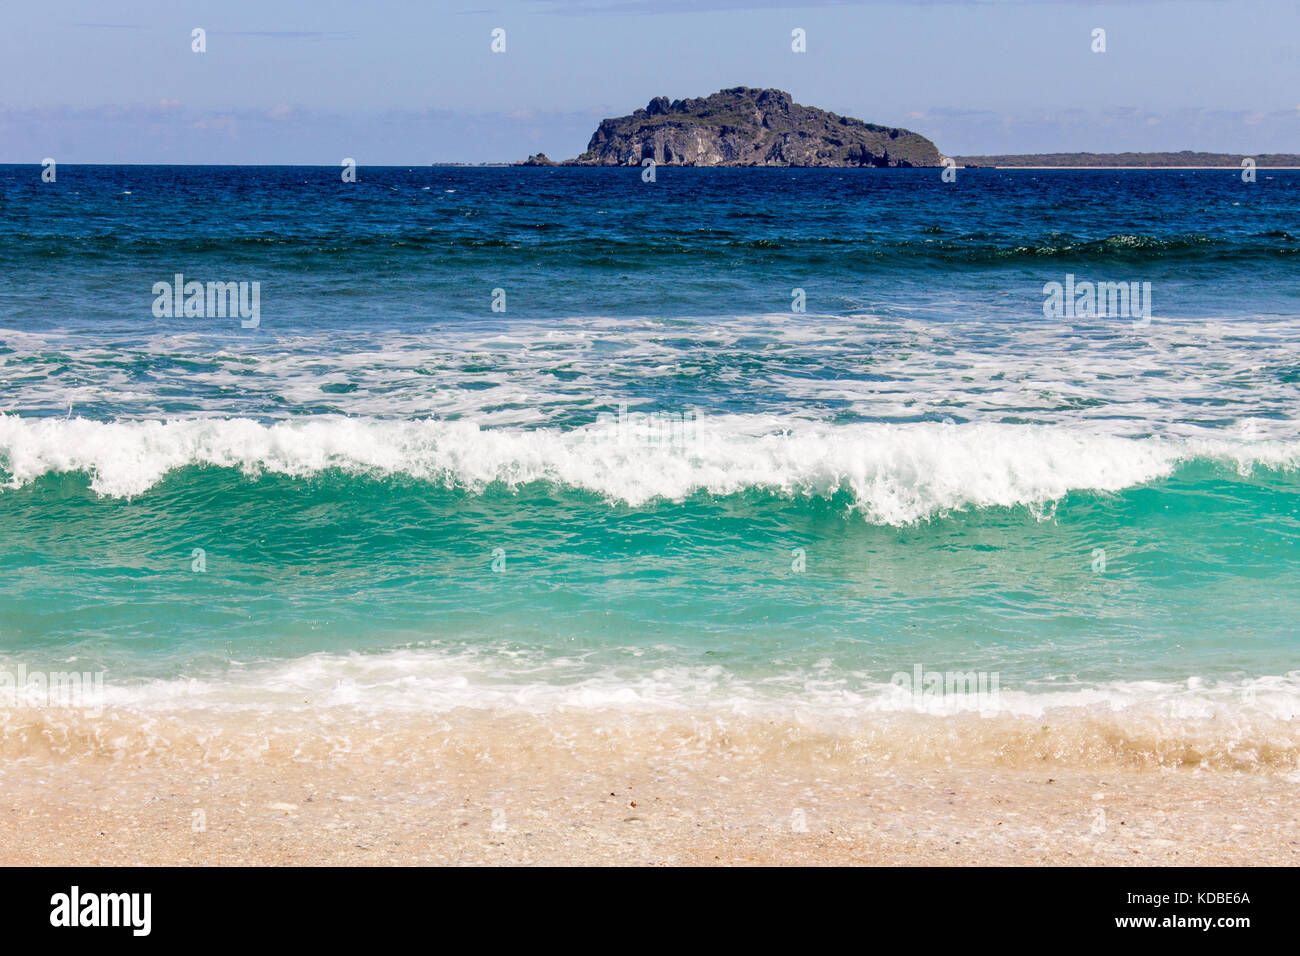 Summer wave on southern tropical island of Indonesia - Stock Image